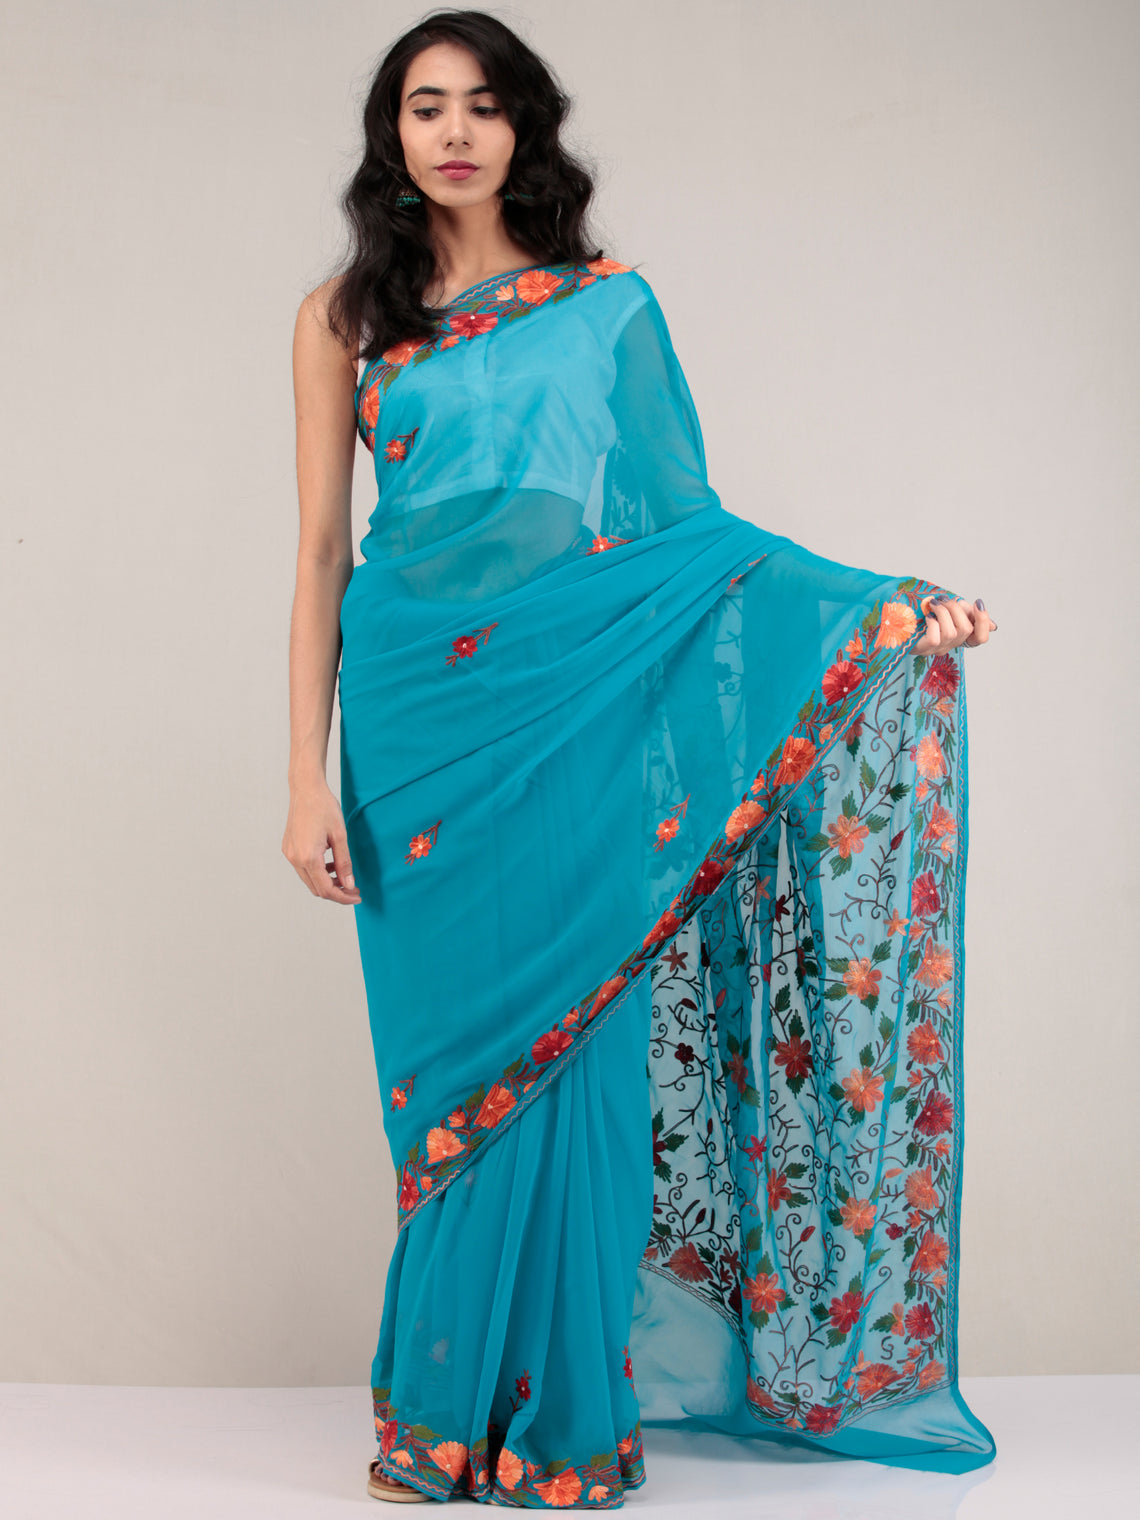 Blue Aari Embroidered Georgette Saree From Kashmir - S031704649